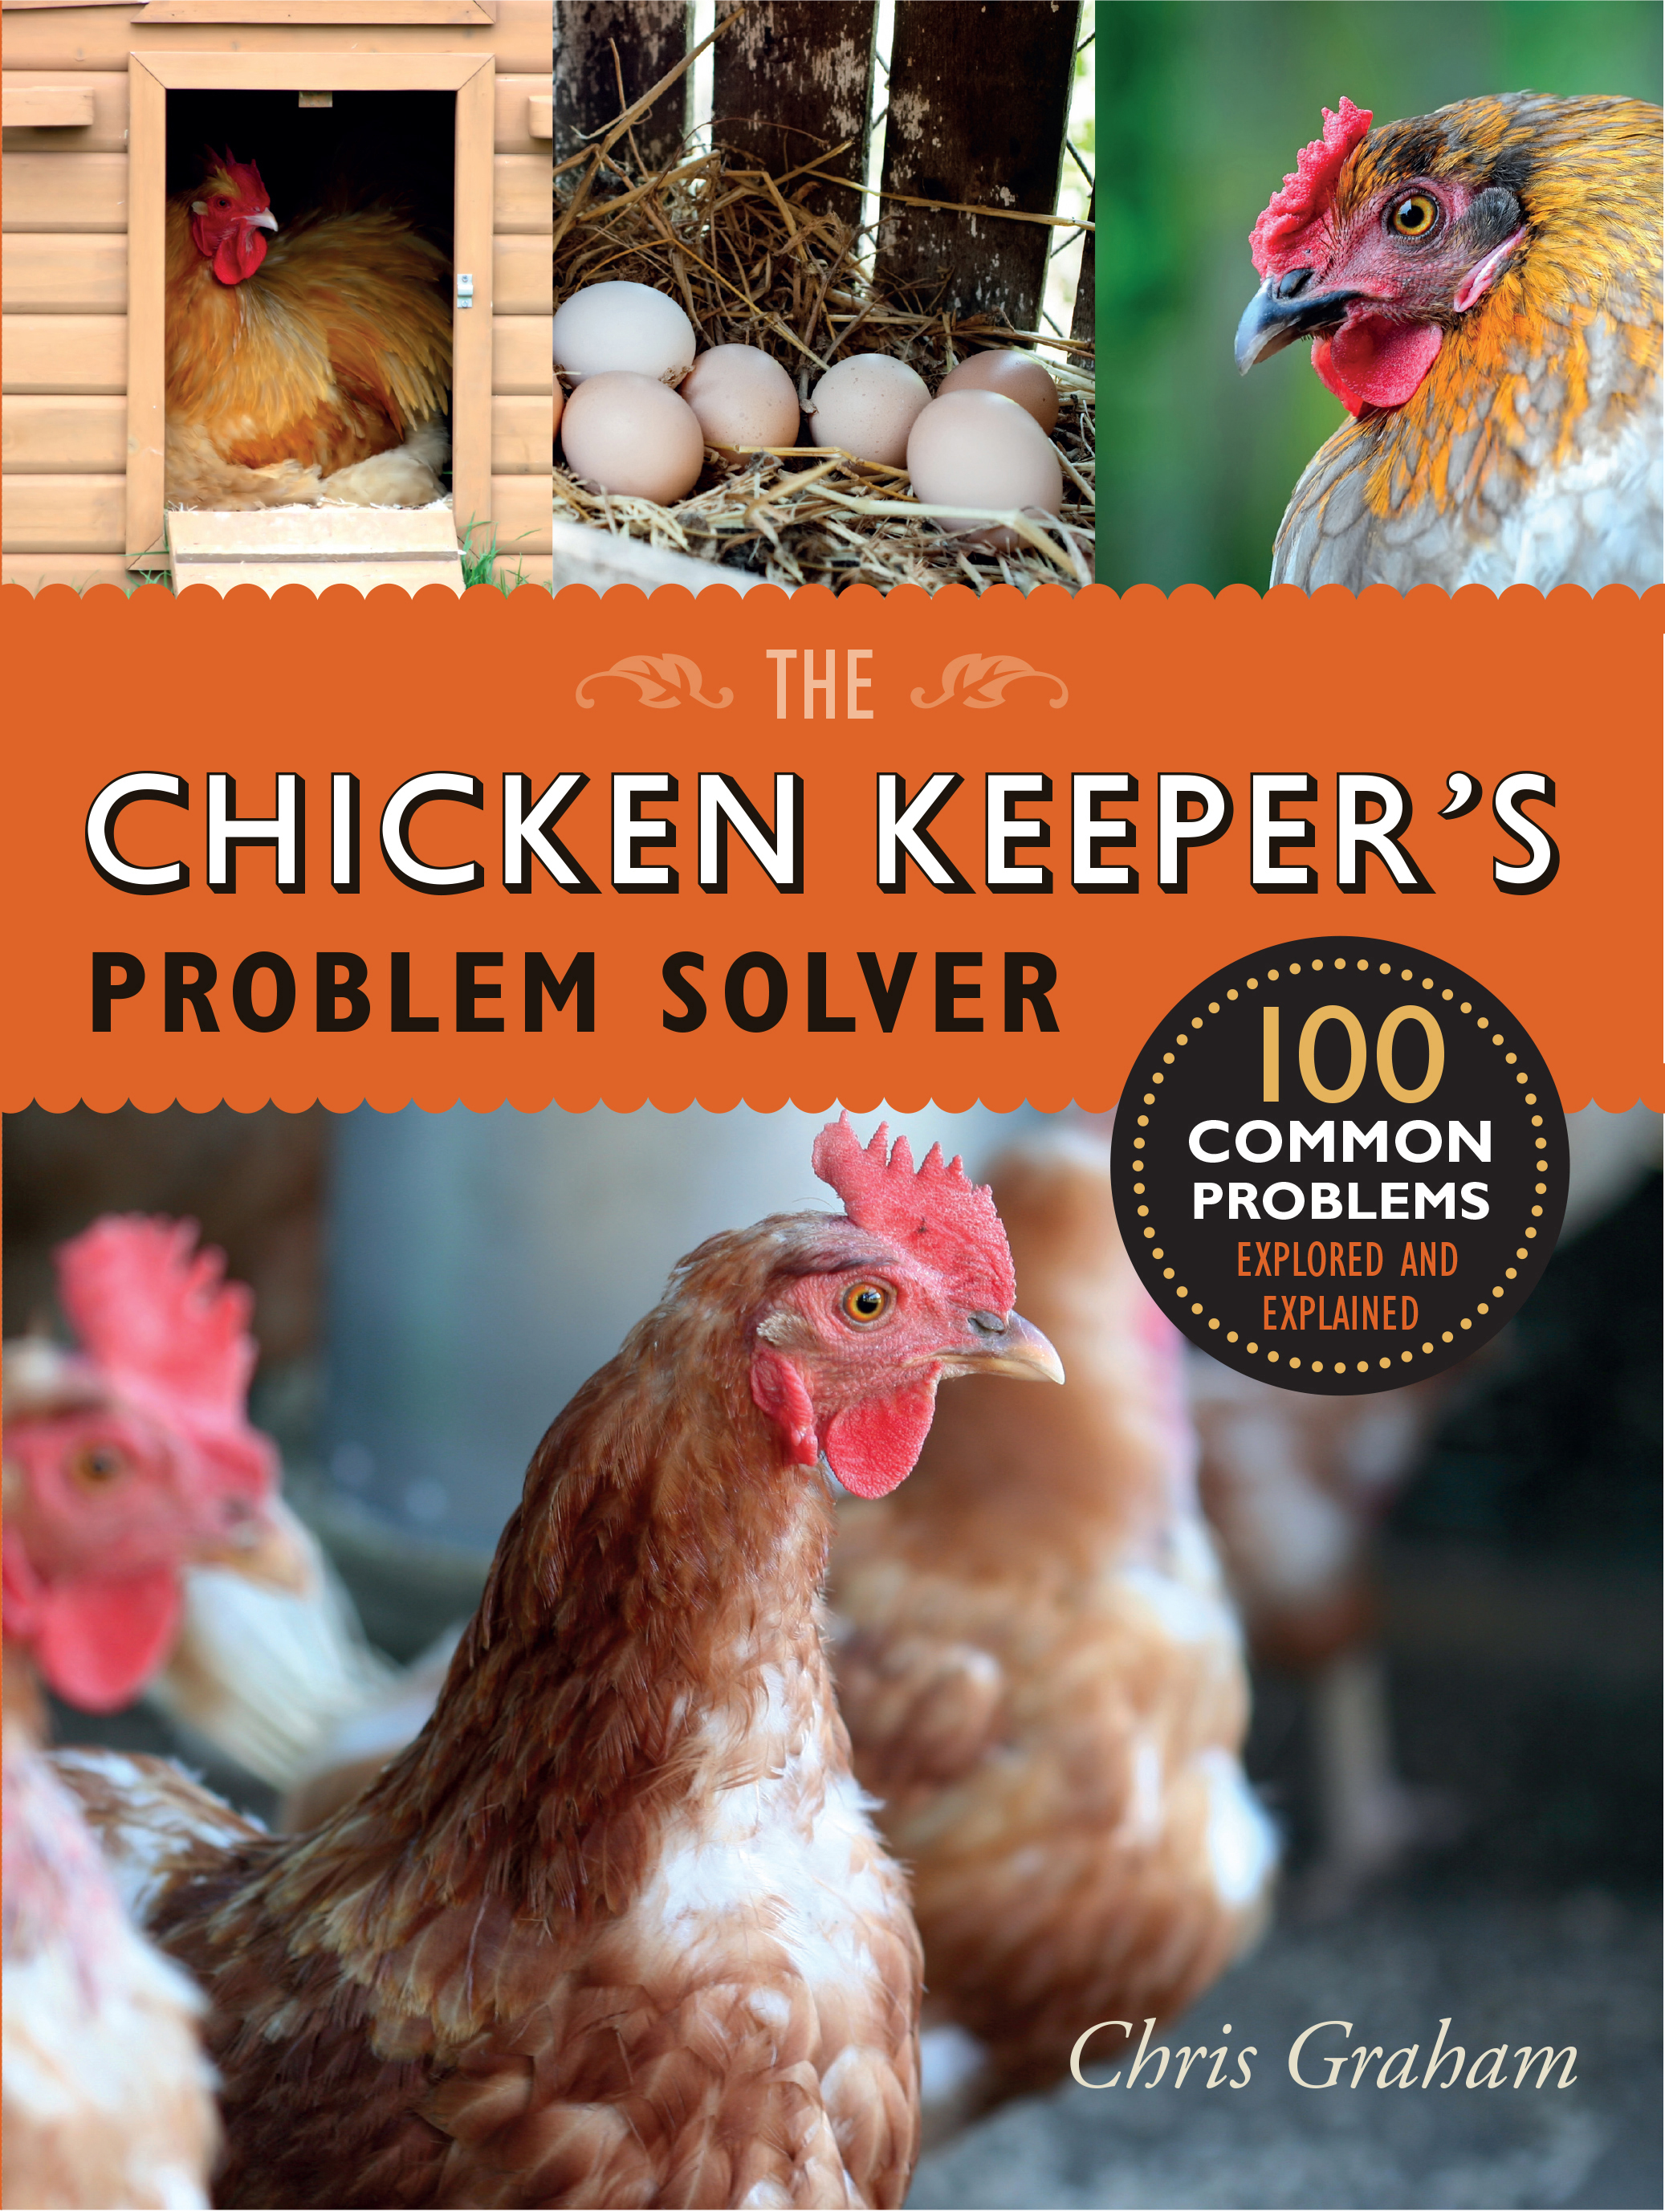 The Chicken Keepers Problem Solver Chris Graham 9781760111113 Diagram Chickens Roosters Pinterest Download Cover